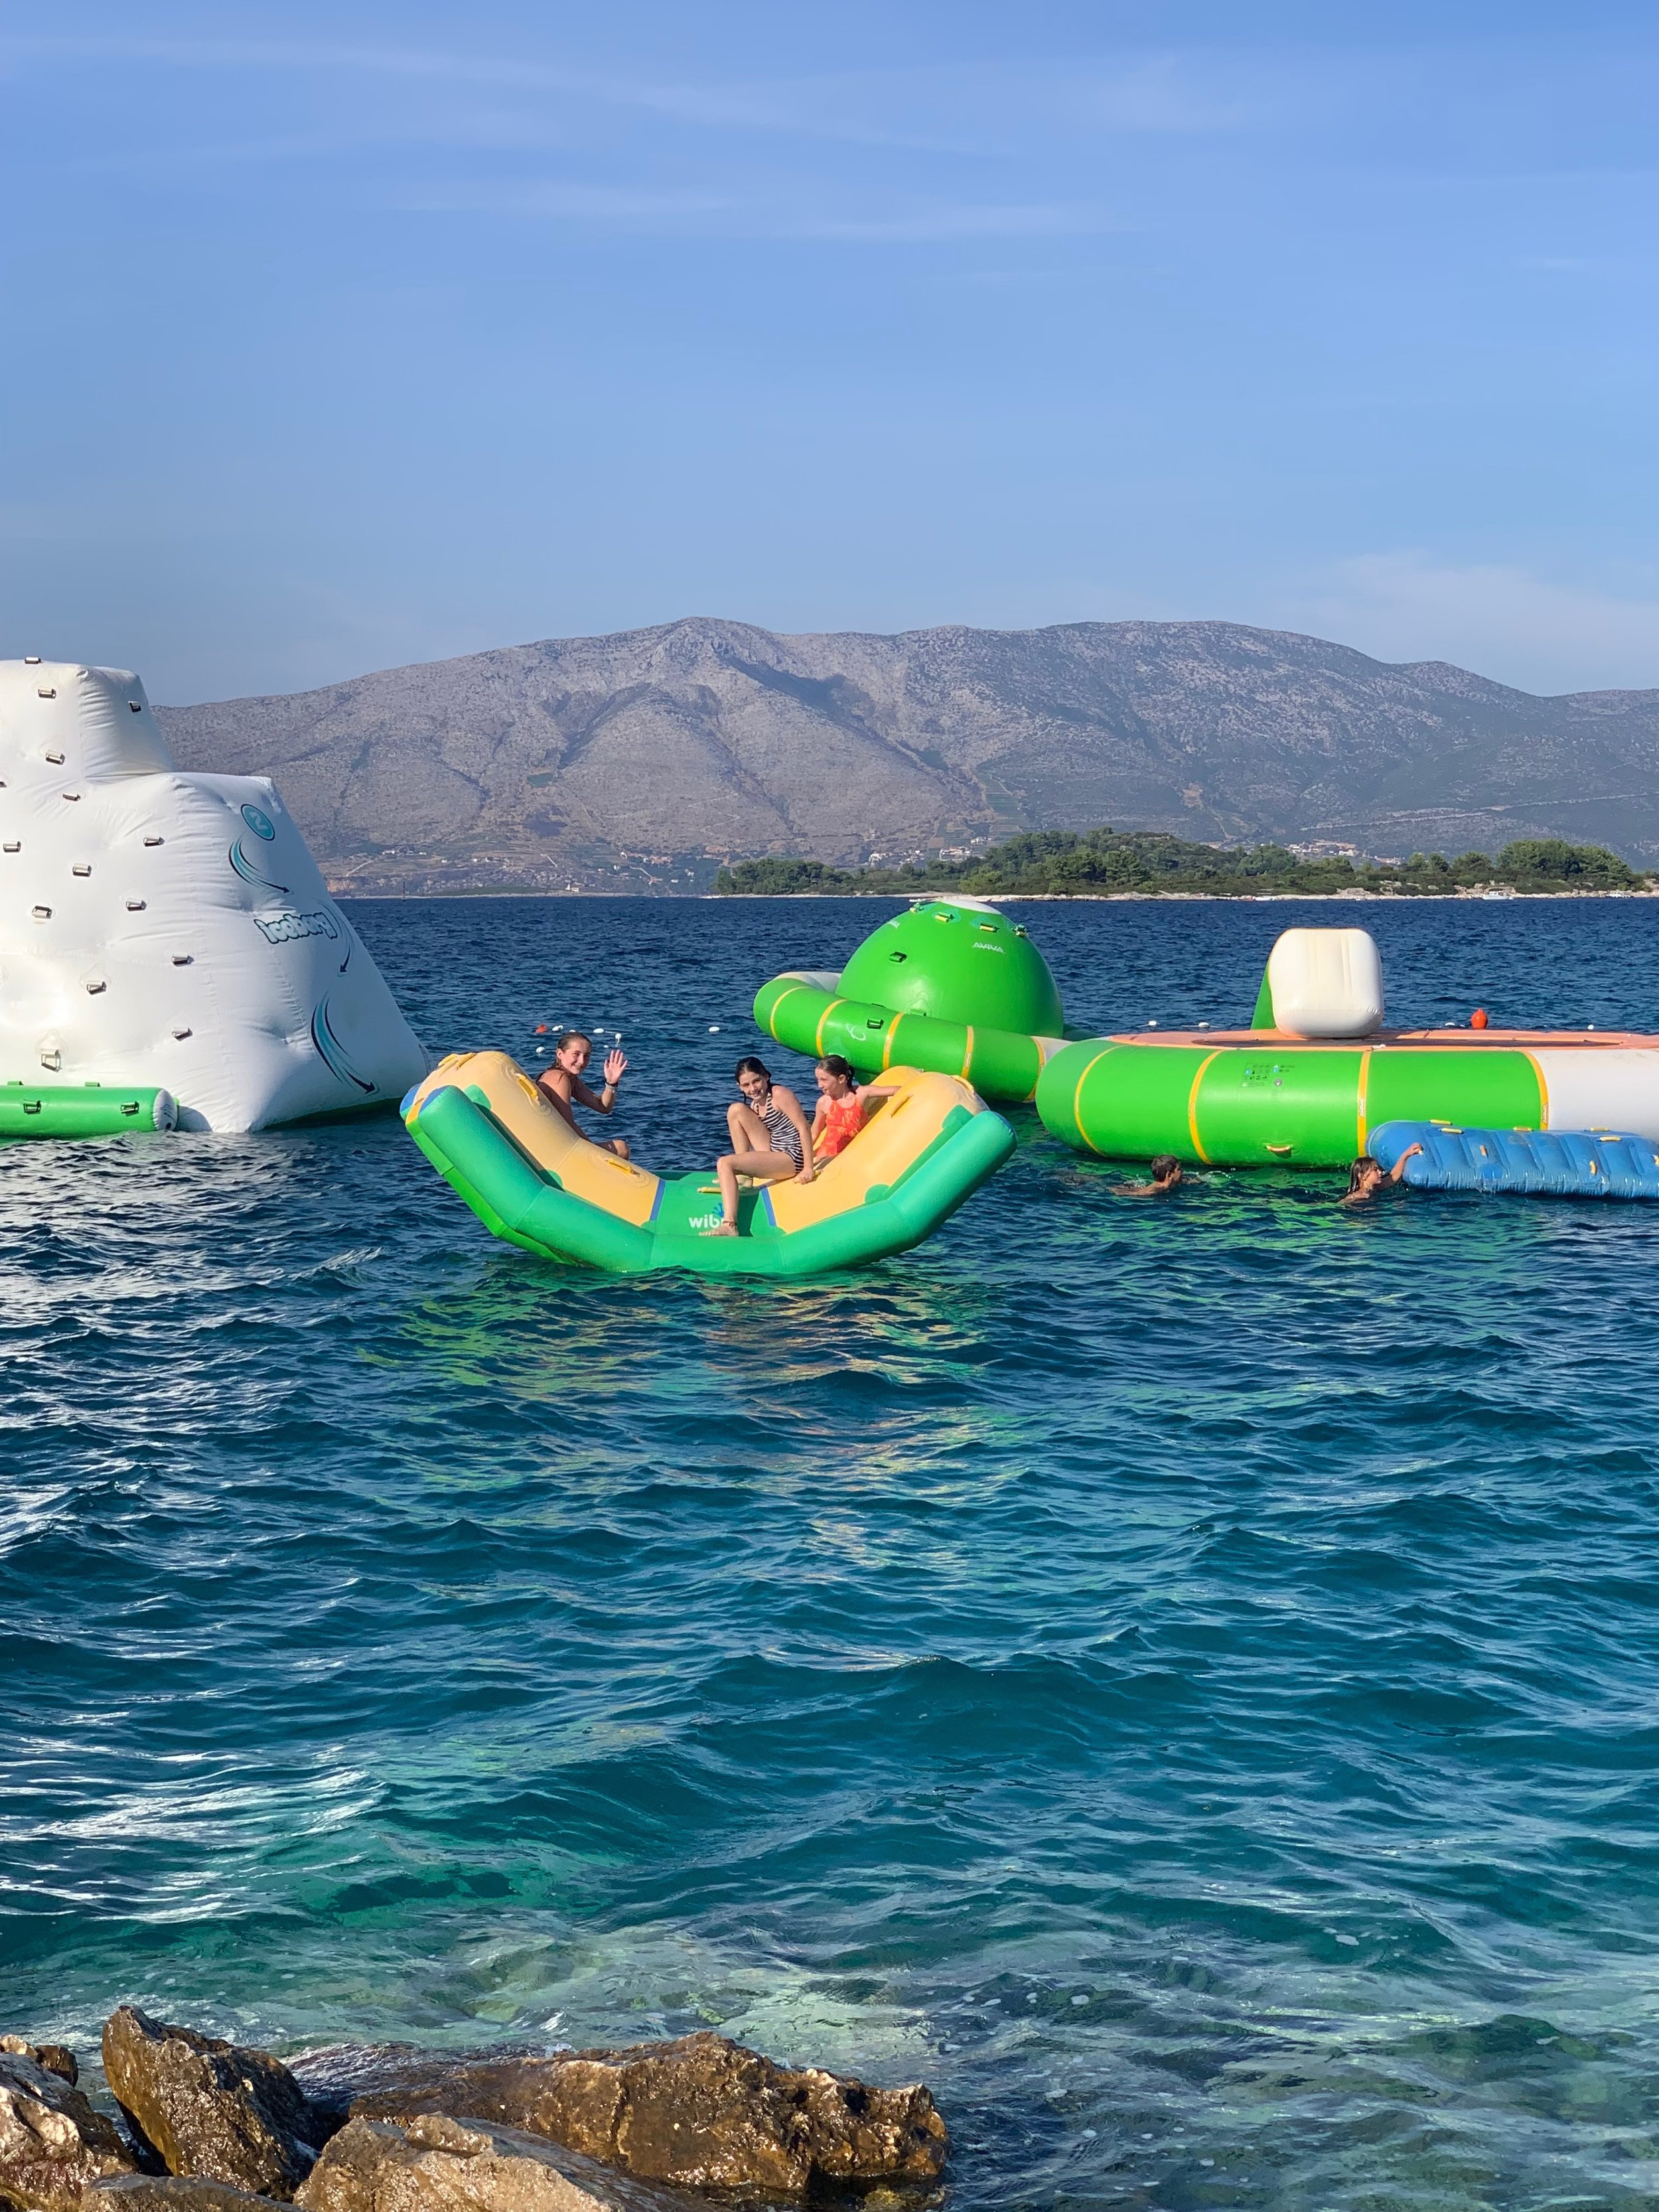 Necessary evil? The water trampoline park is probably best to give into right away, and then they'll forget about it!